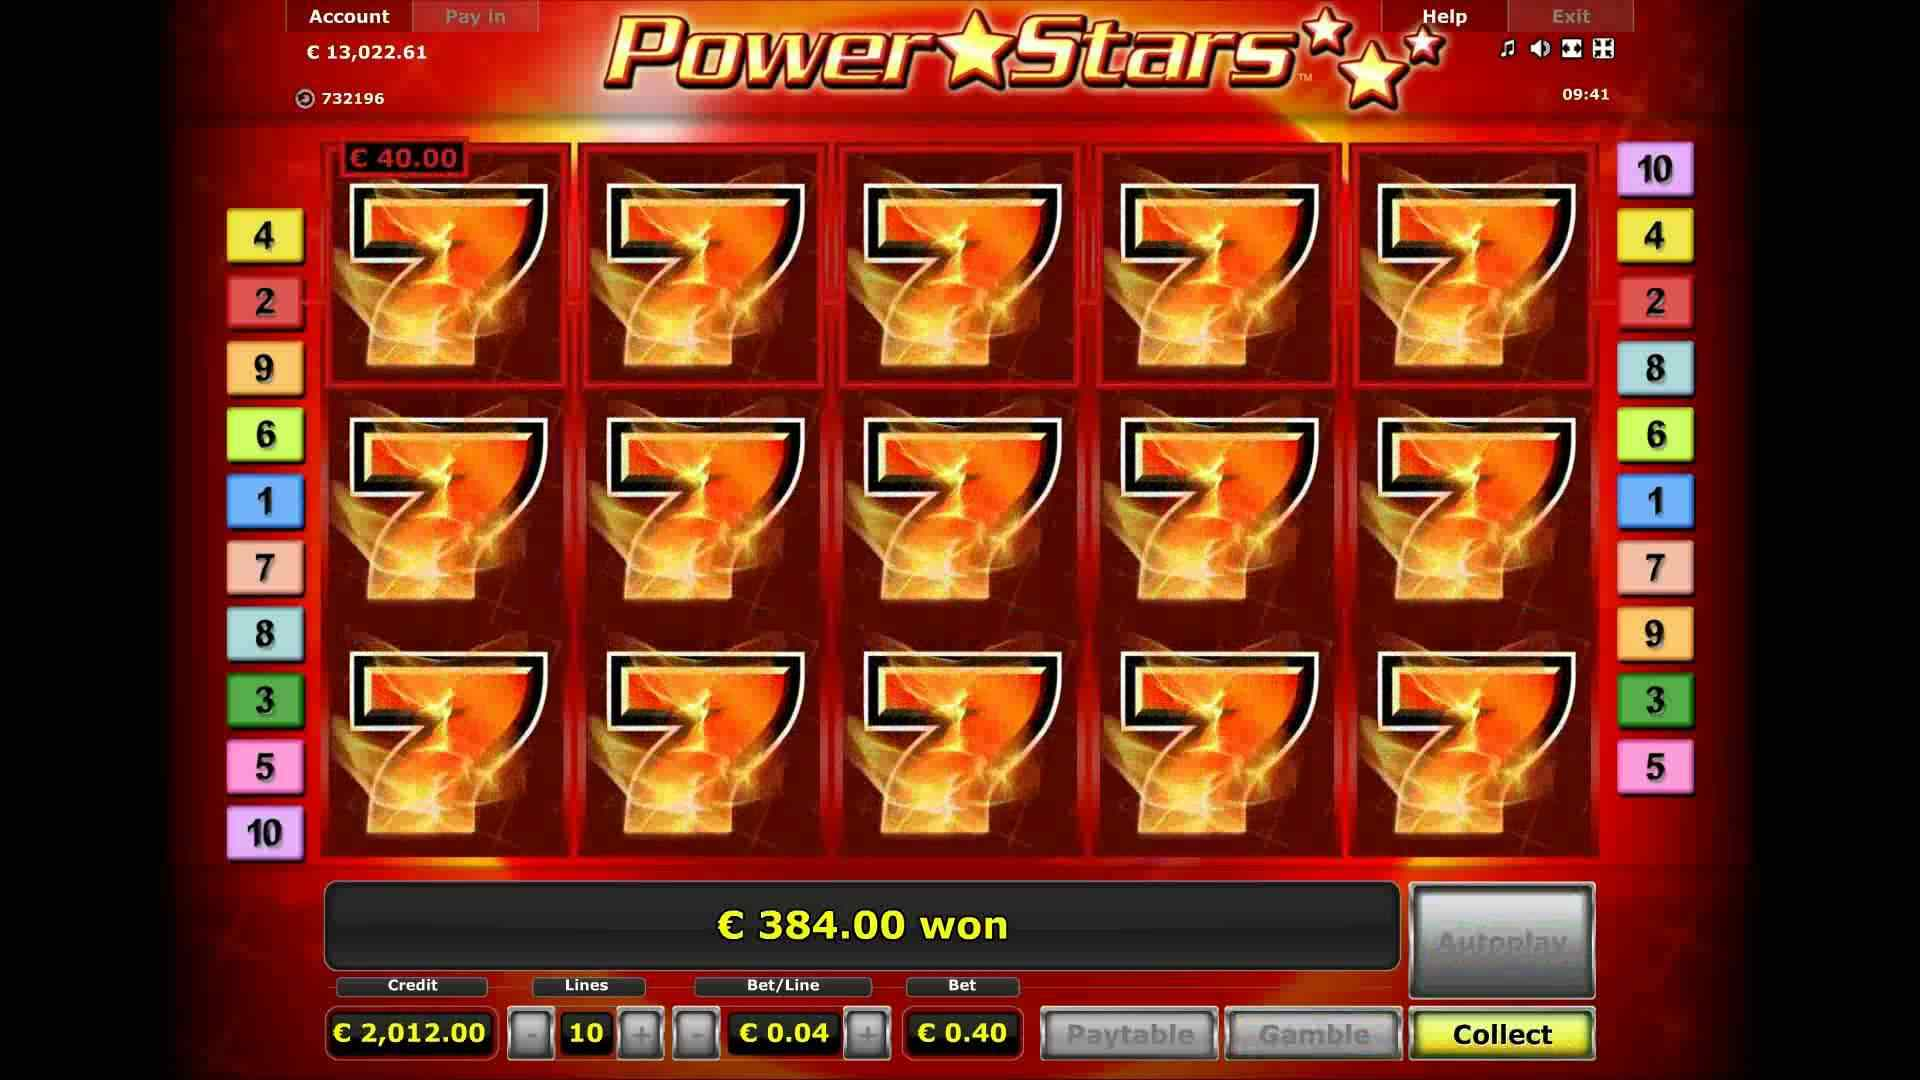 Power star casino free games siasconset casino